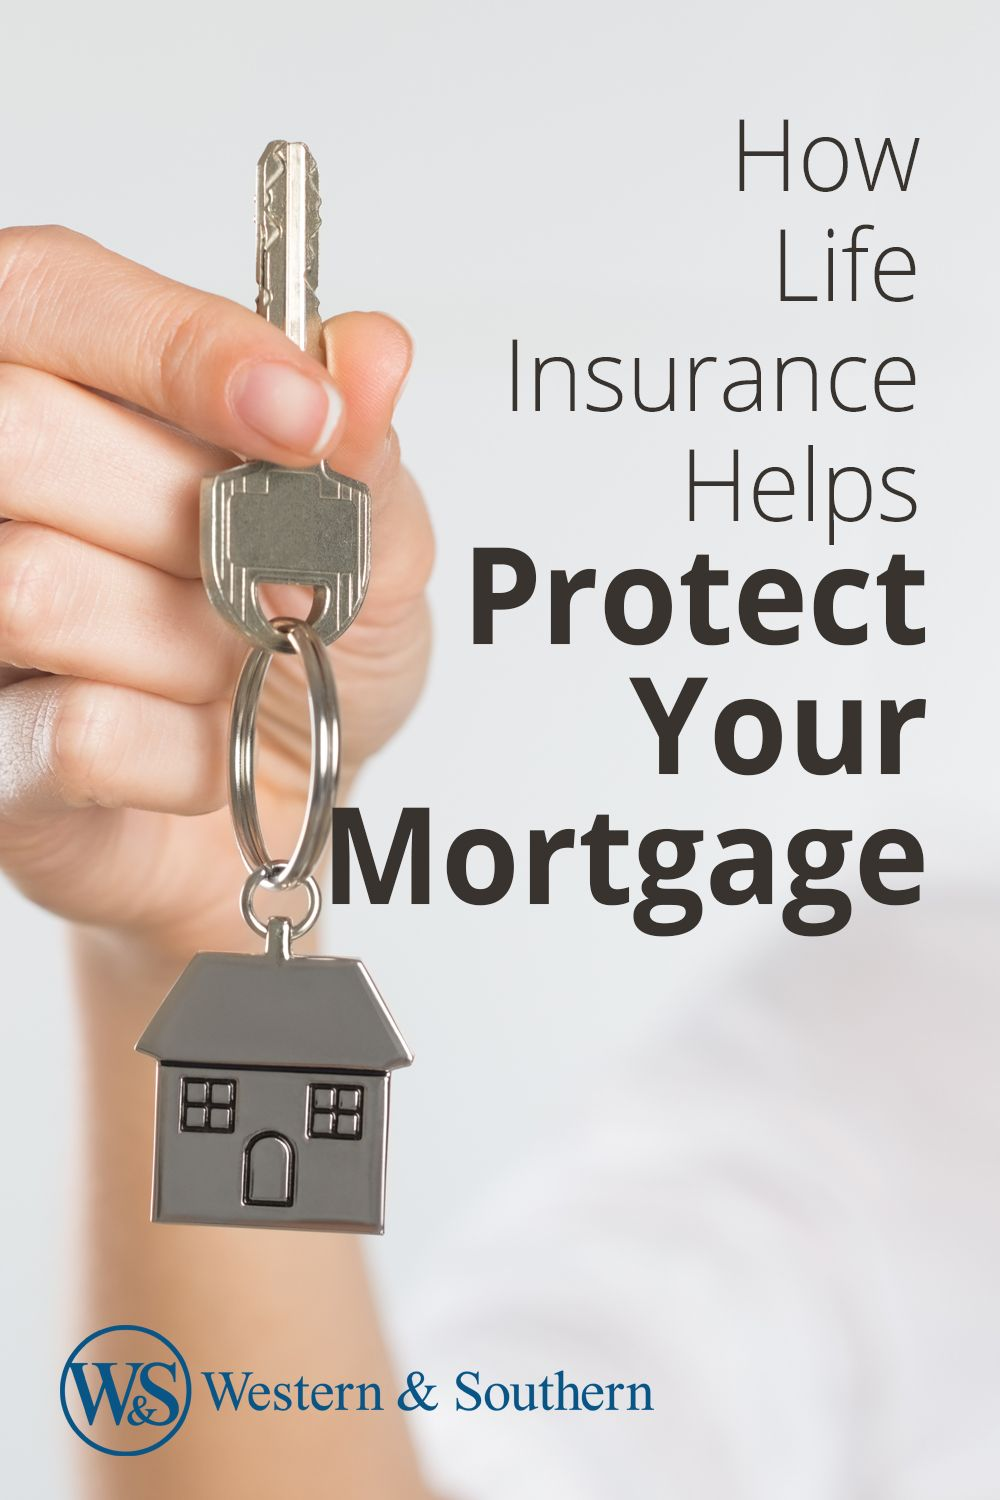 Help protect your mortgage with a life insurance policy